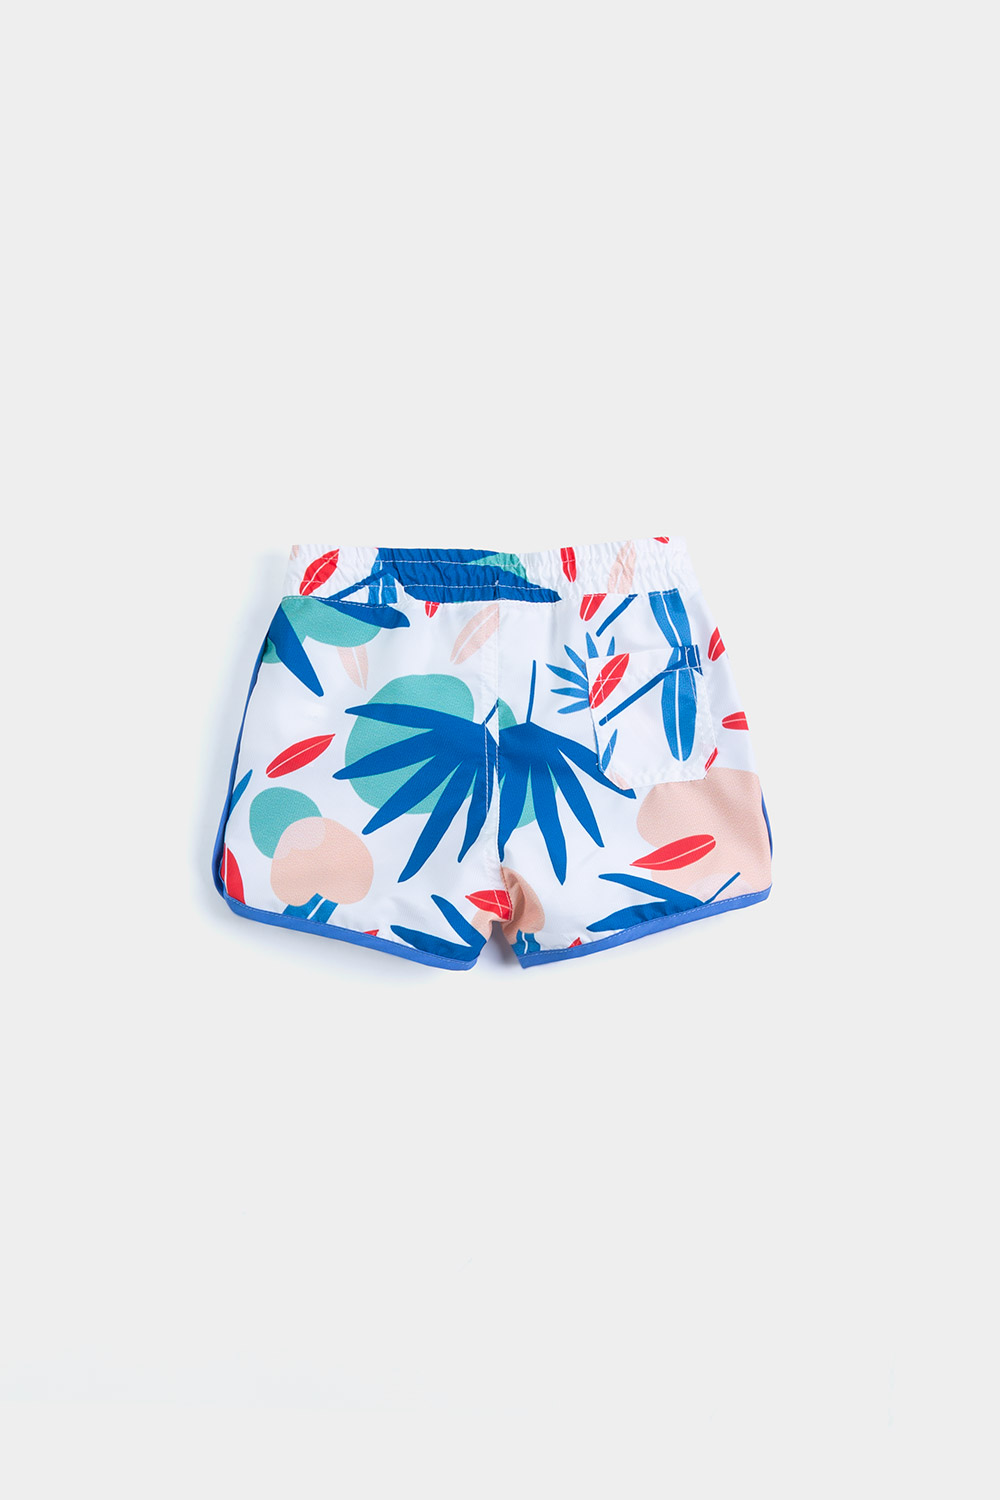 Eco Friendly Swimwear / Tropical footprint short / New Collection Footprint 2020 back view